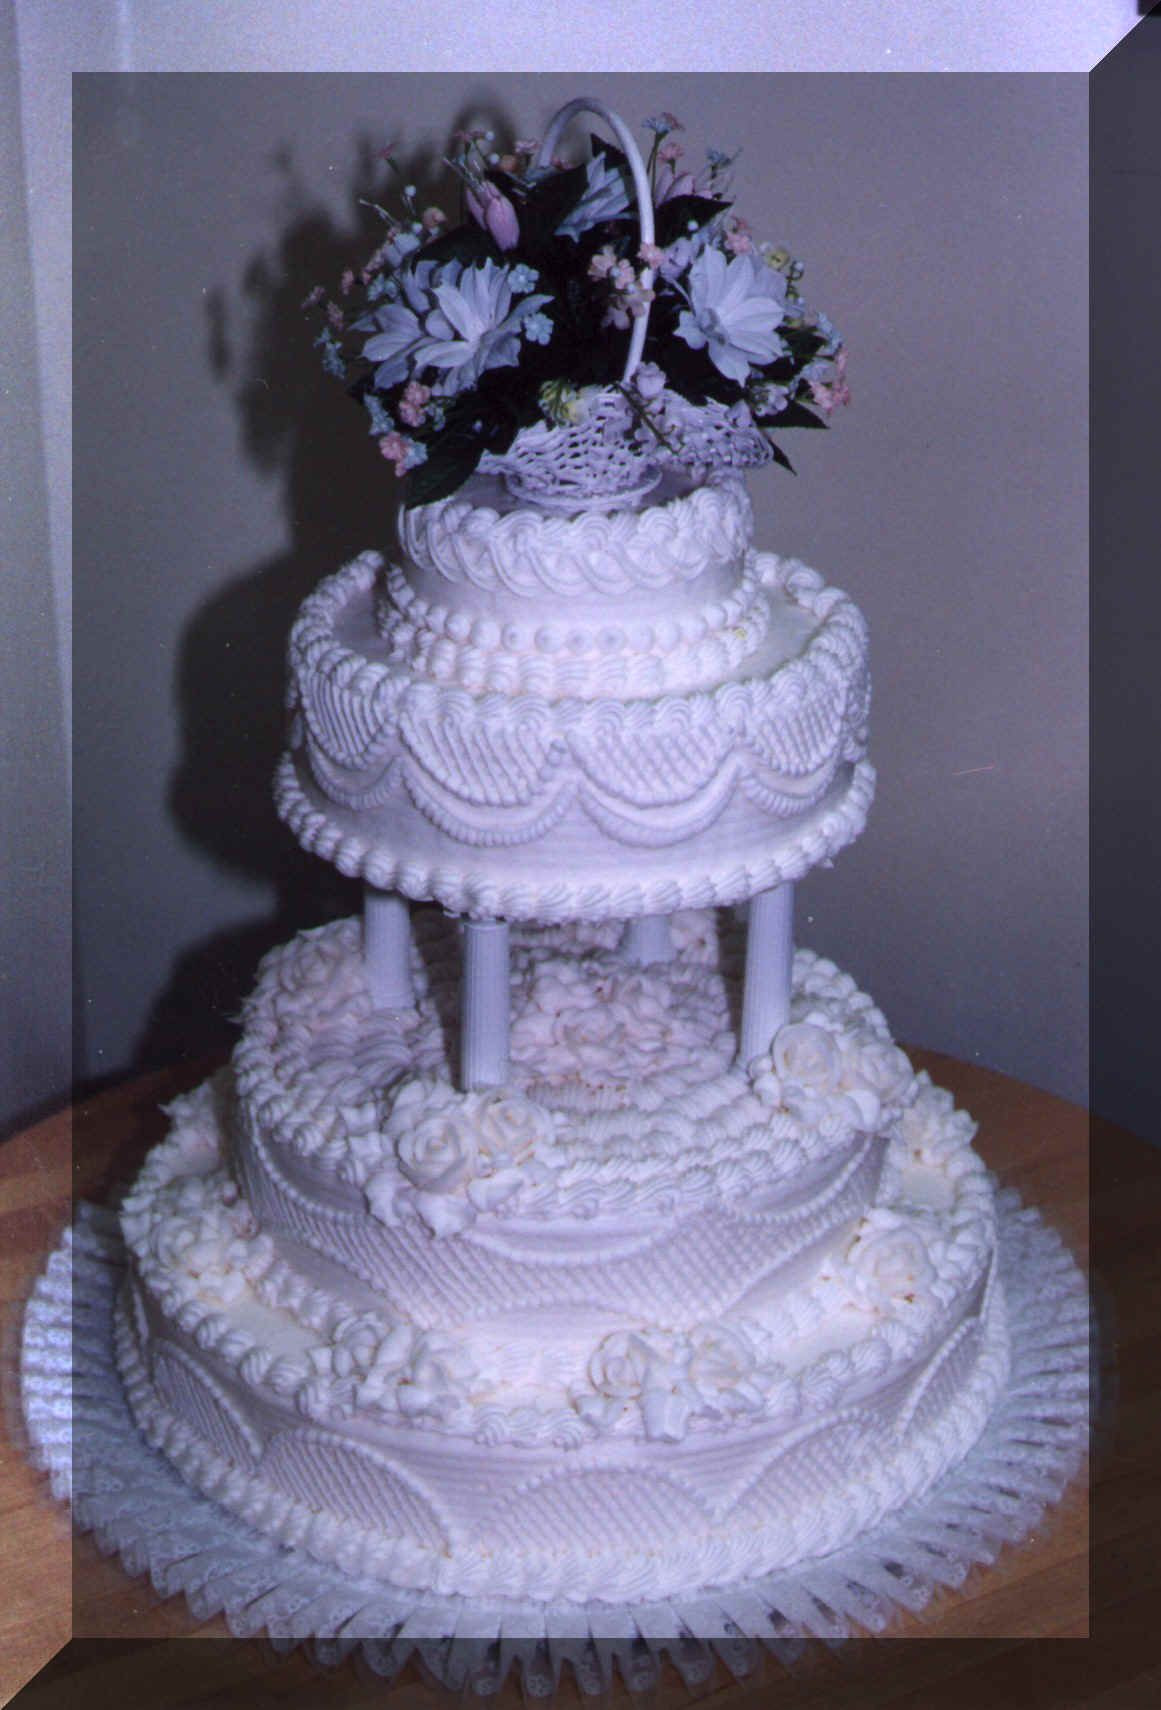 Walmart Wedding Cakes Prices  Walmart Wedding Cakes Prices